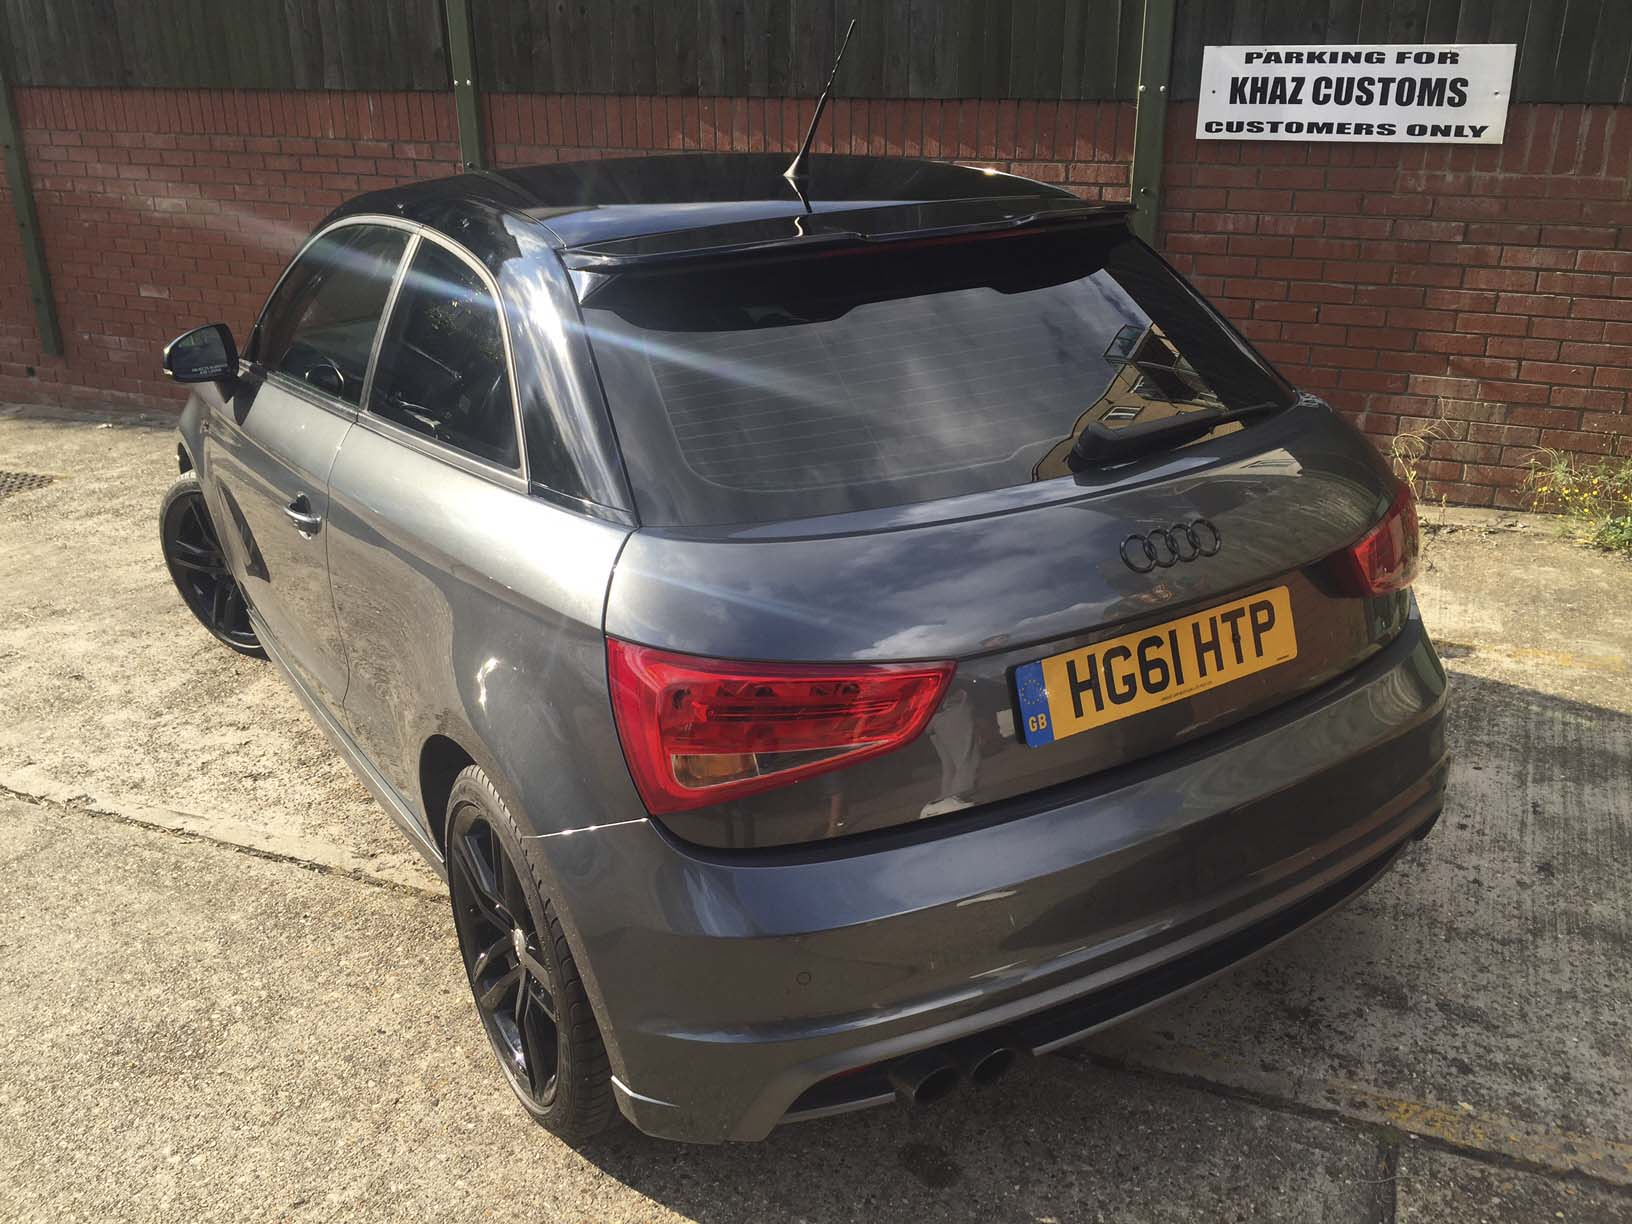 Audi A1 Roof wrapped Black